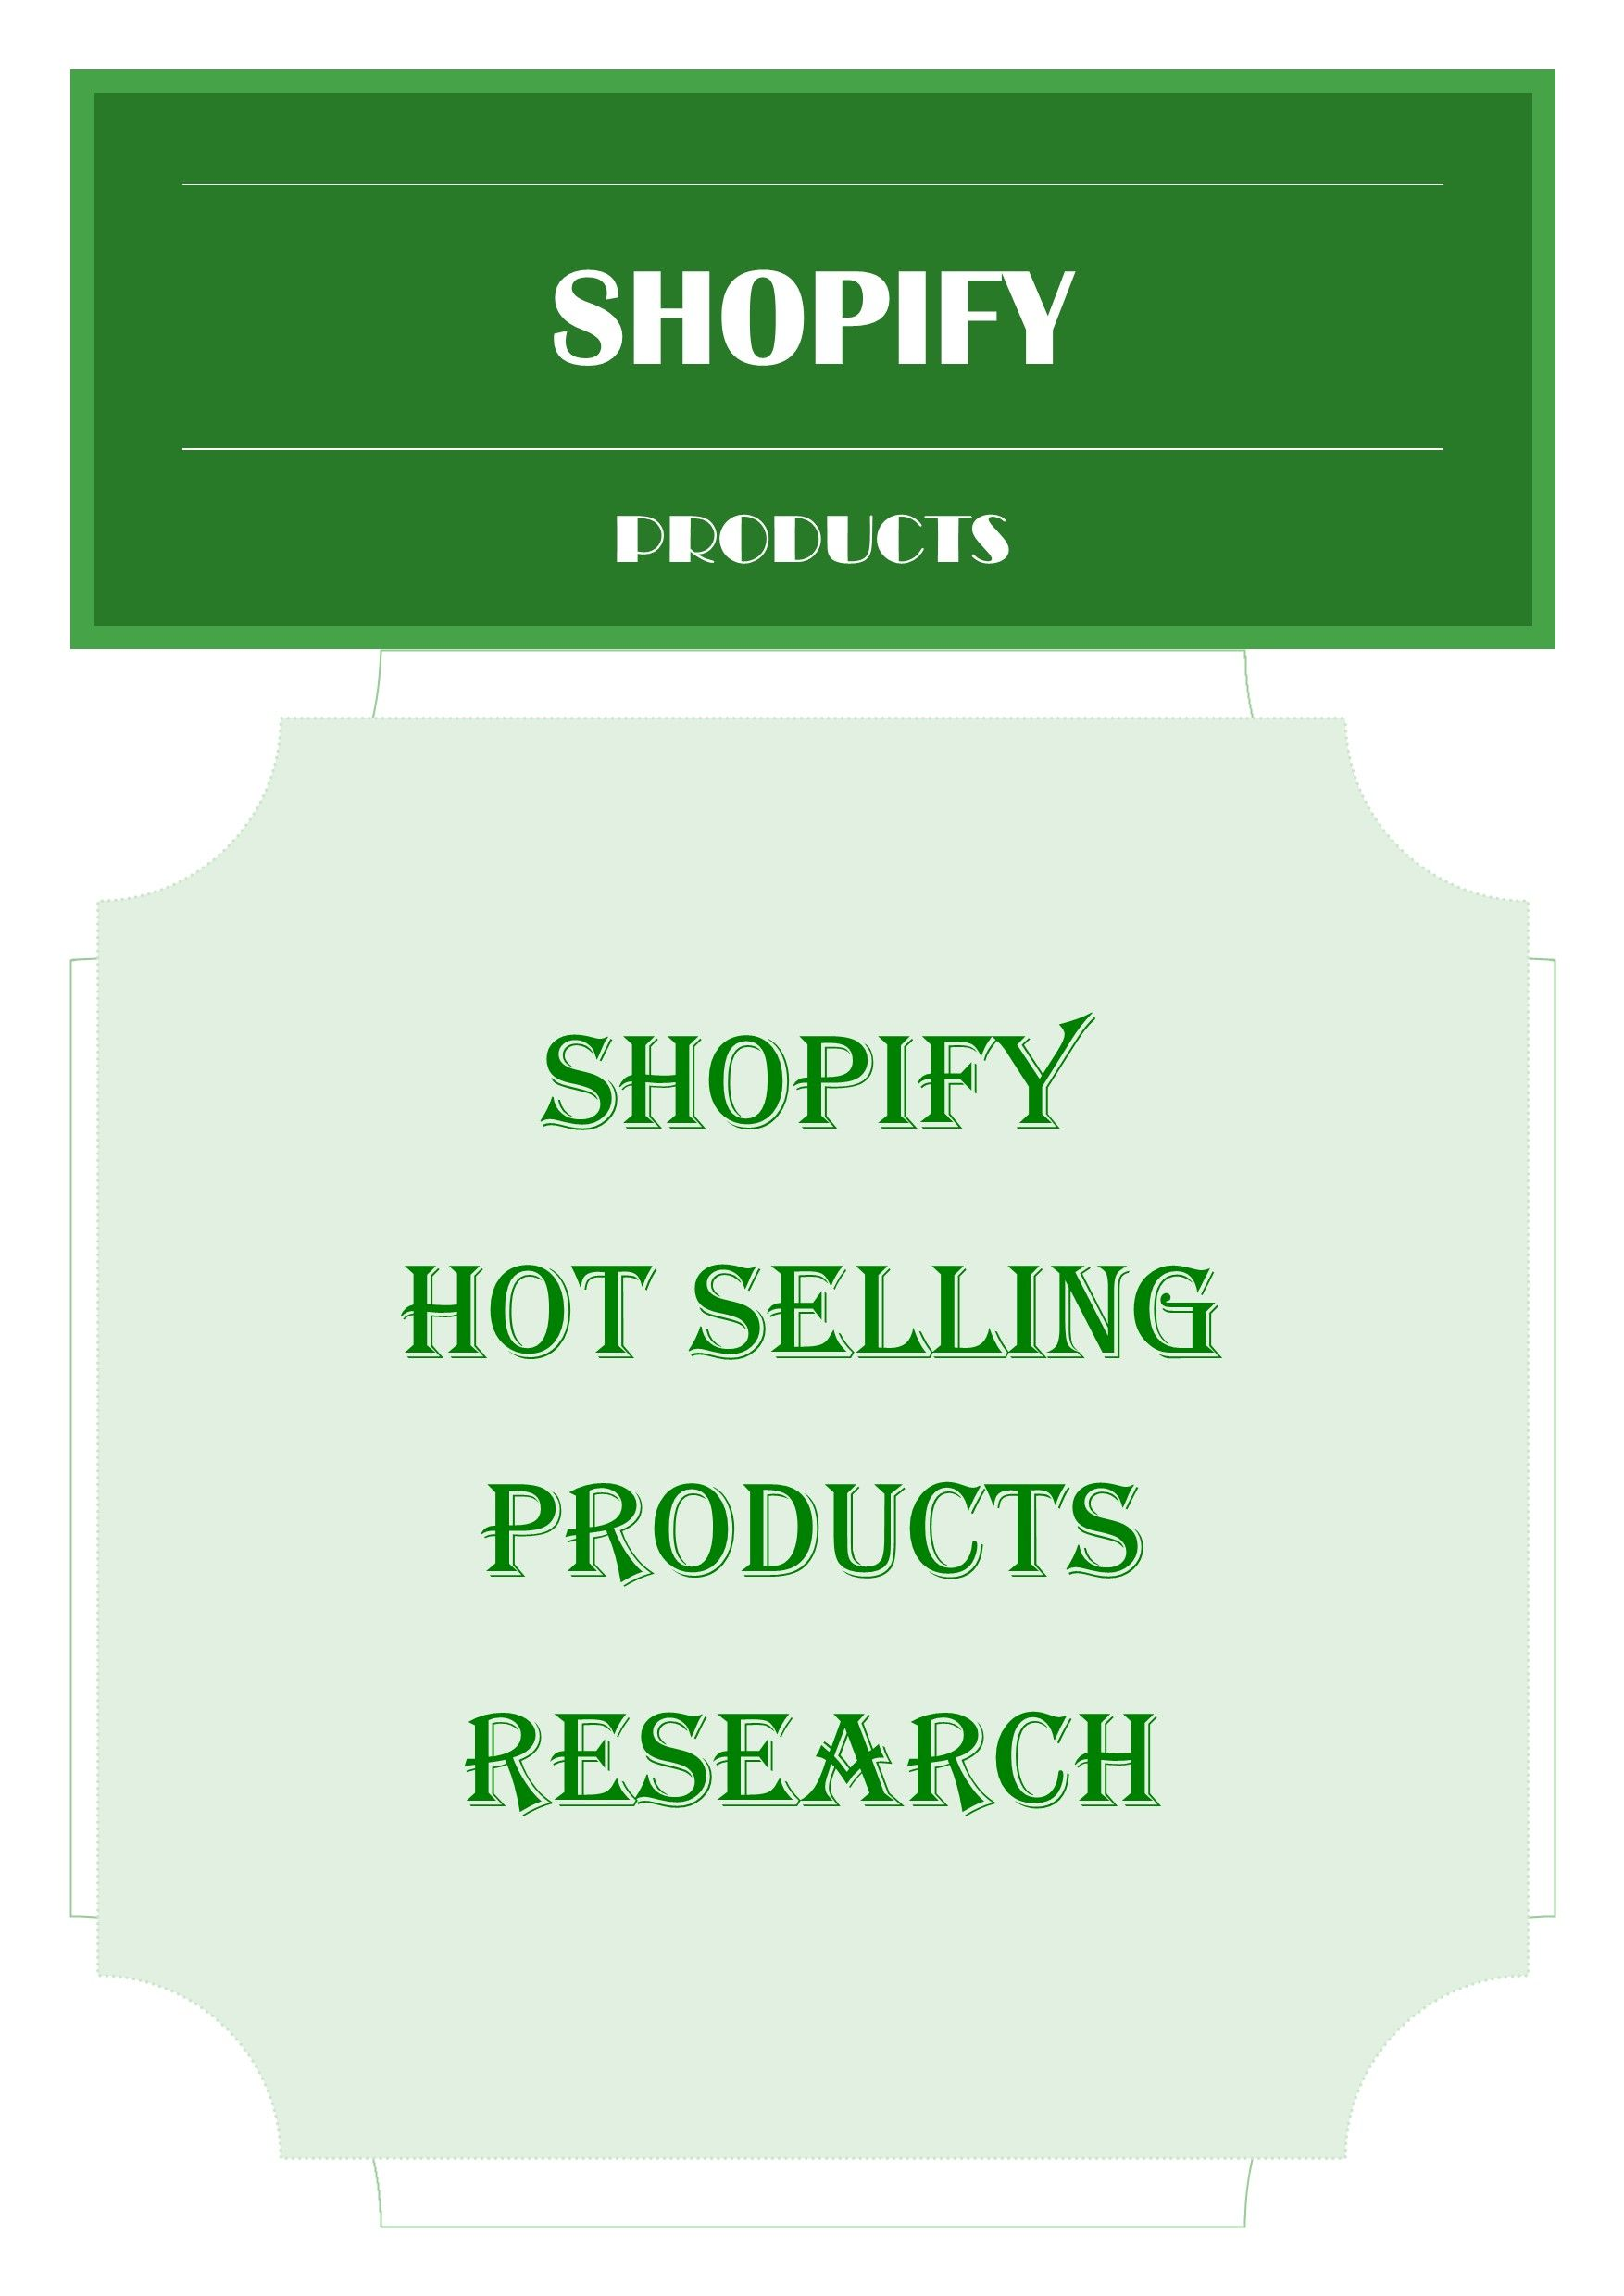 check this out for hot selling products research https